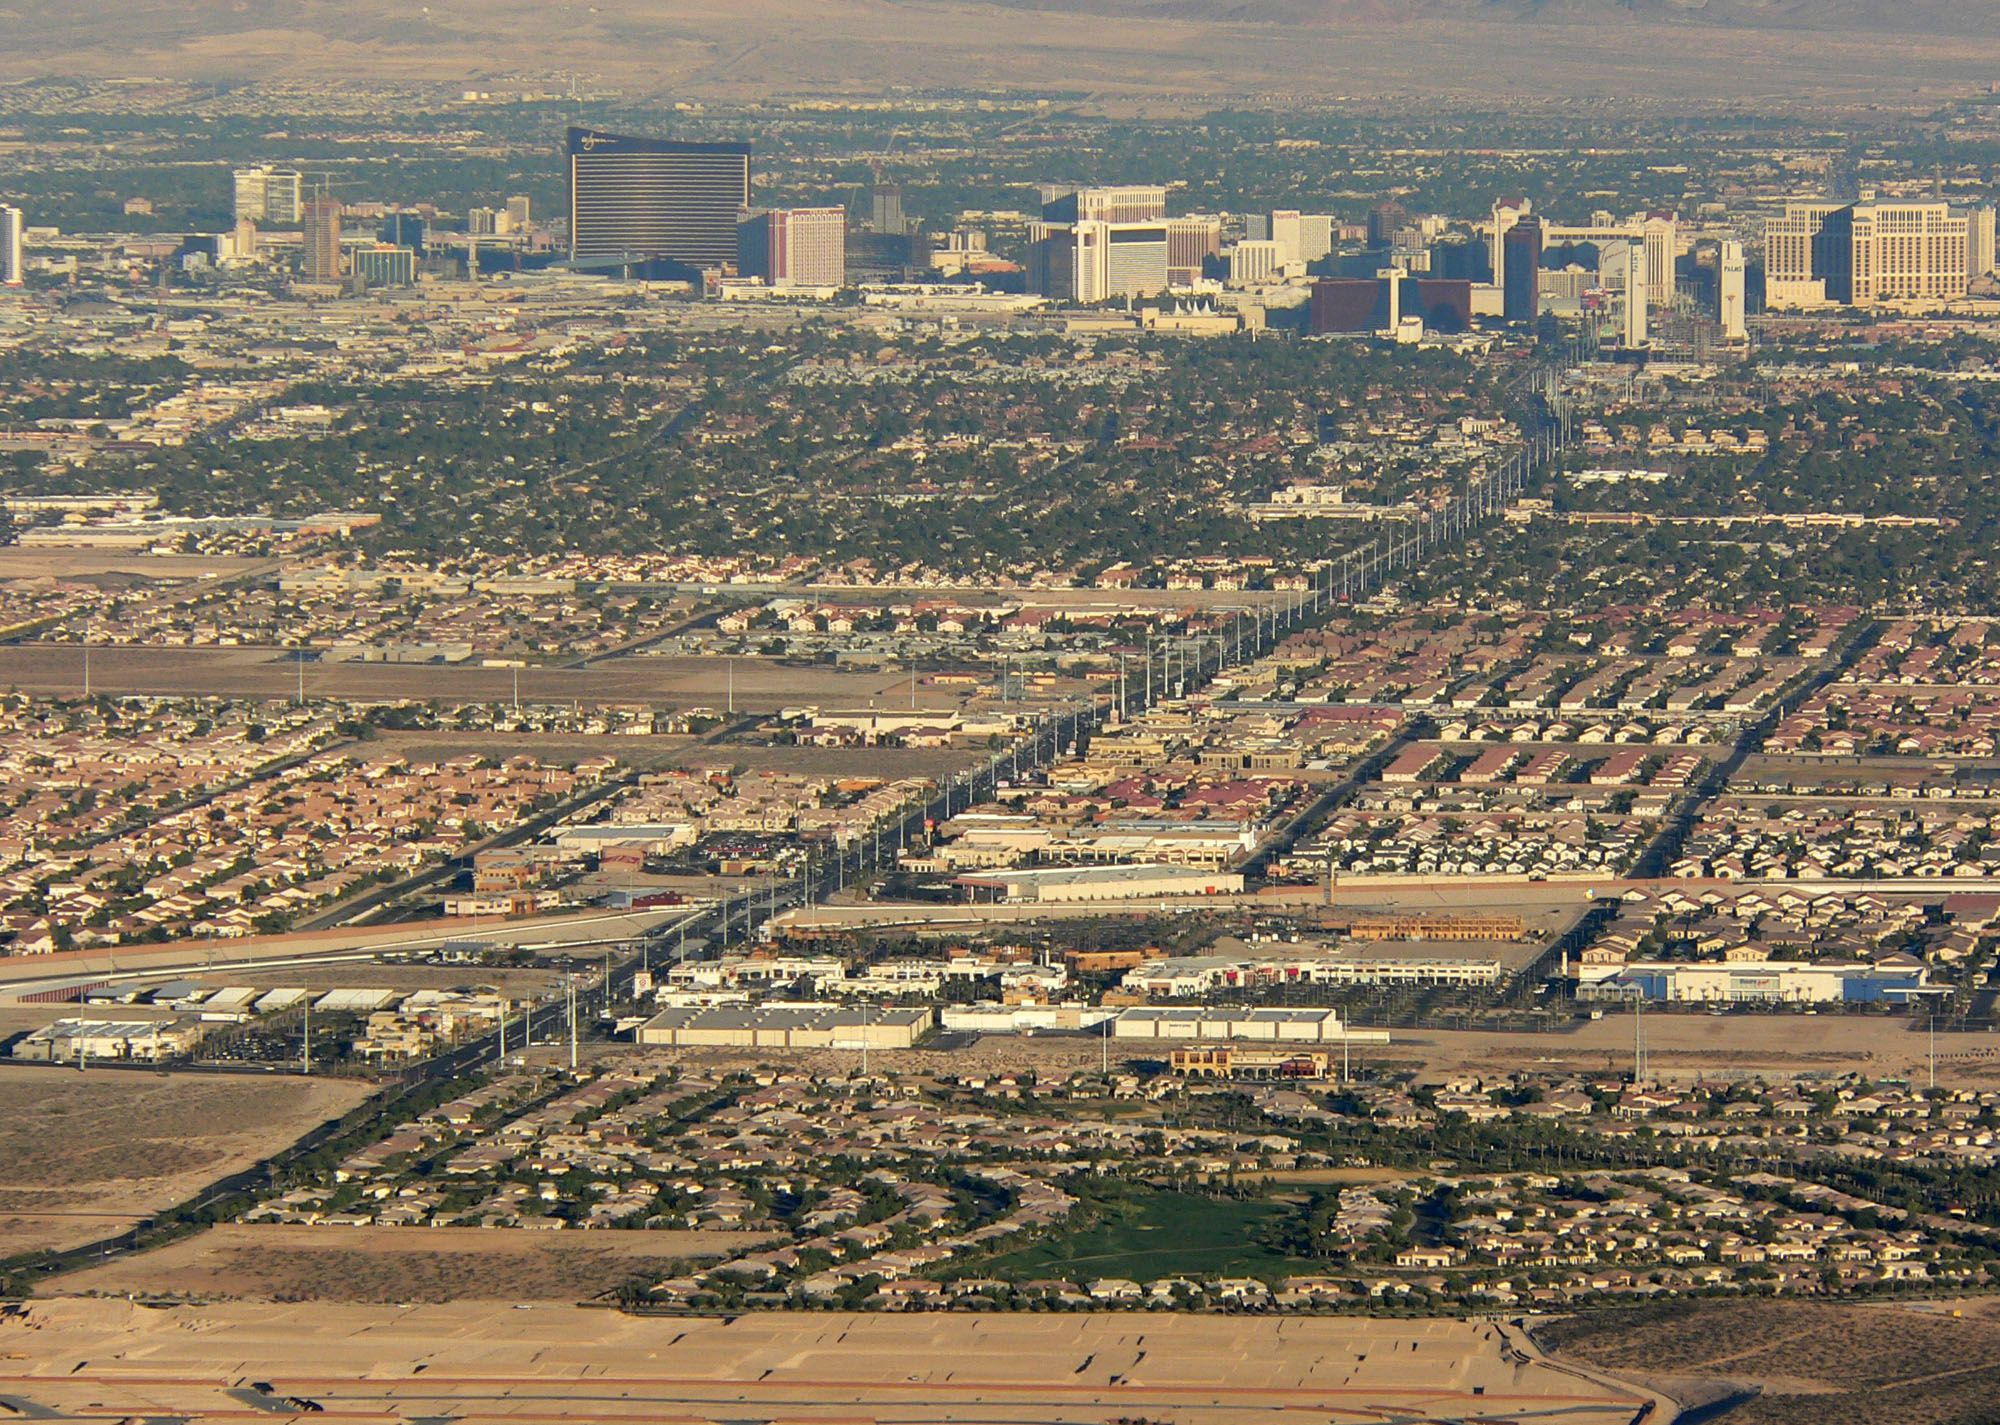 An aerial view of the Las Vegas suburbs